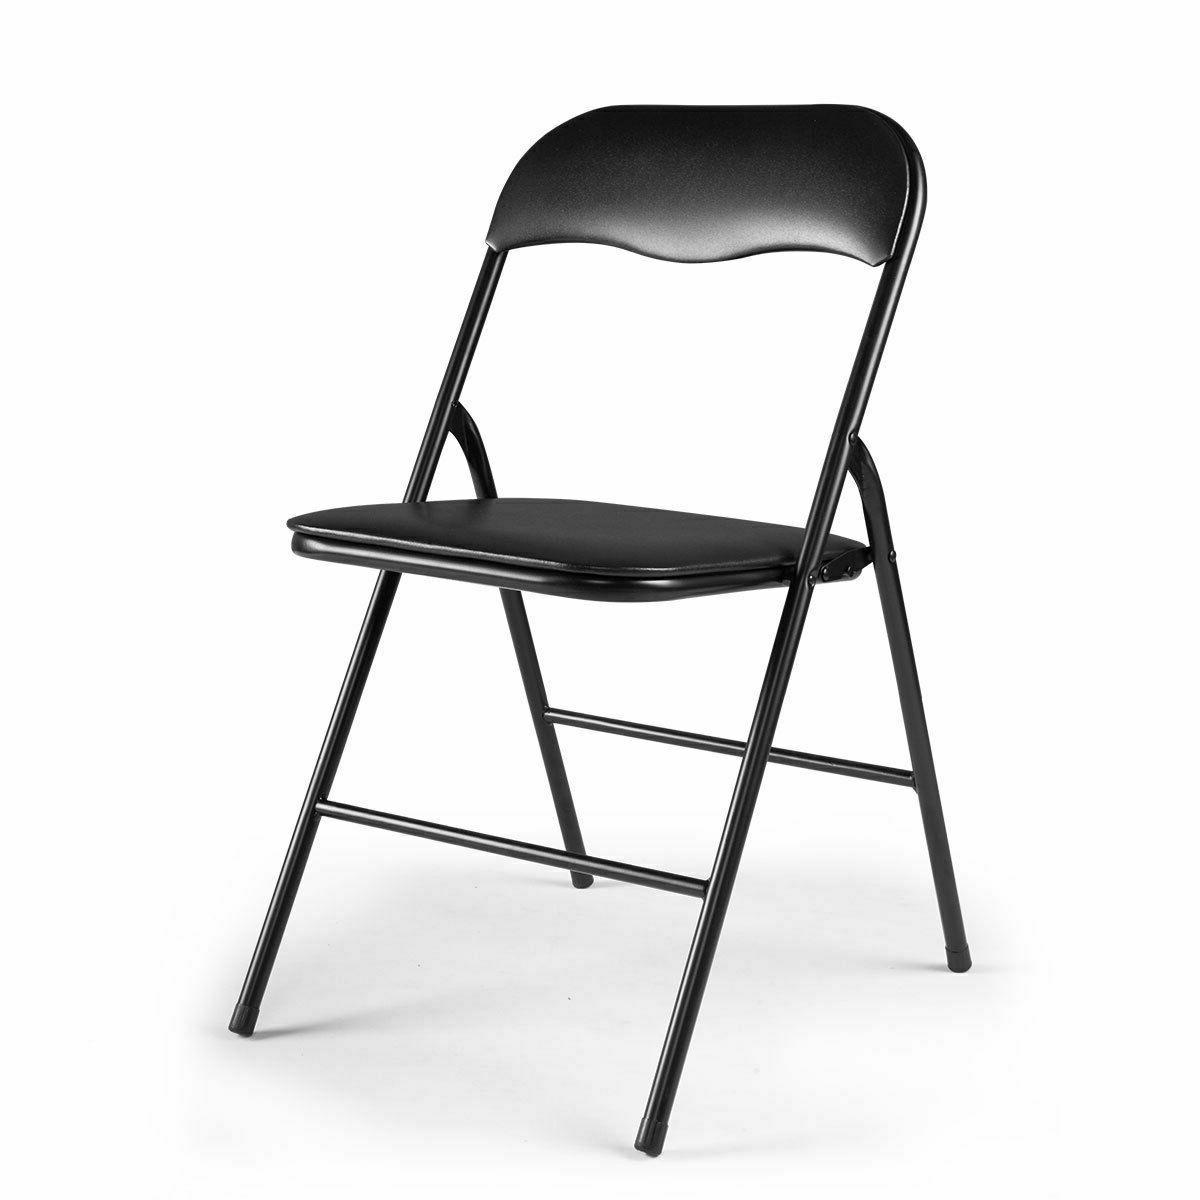 Commercial Black Folding Chairs 4/5/6 PCS Party